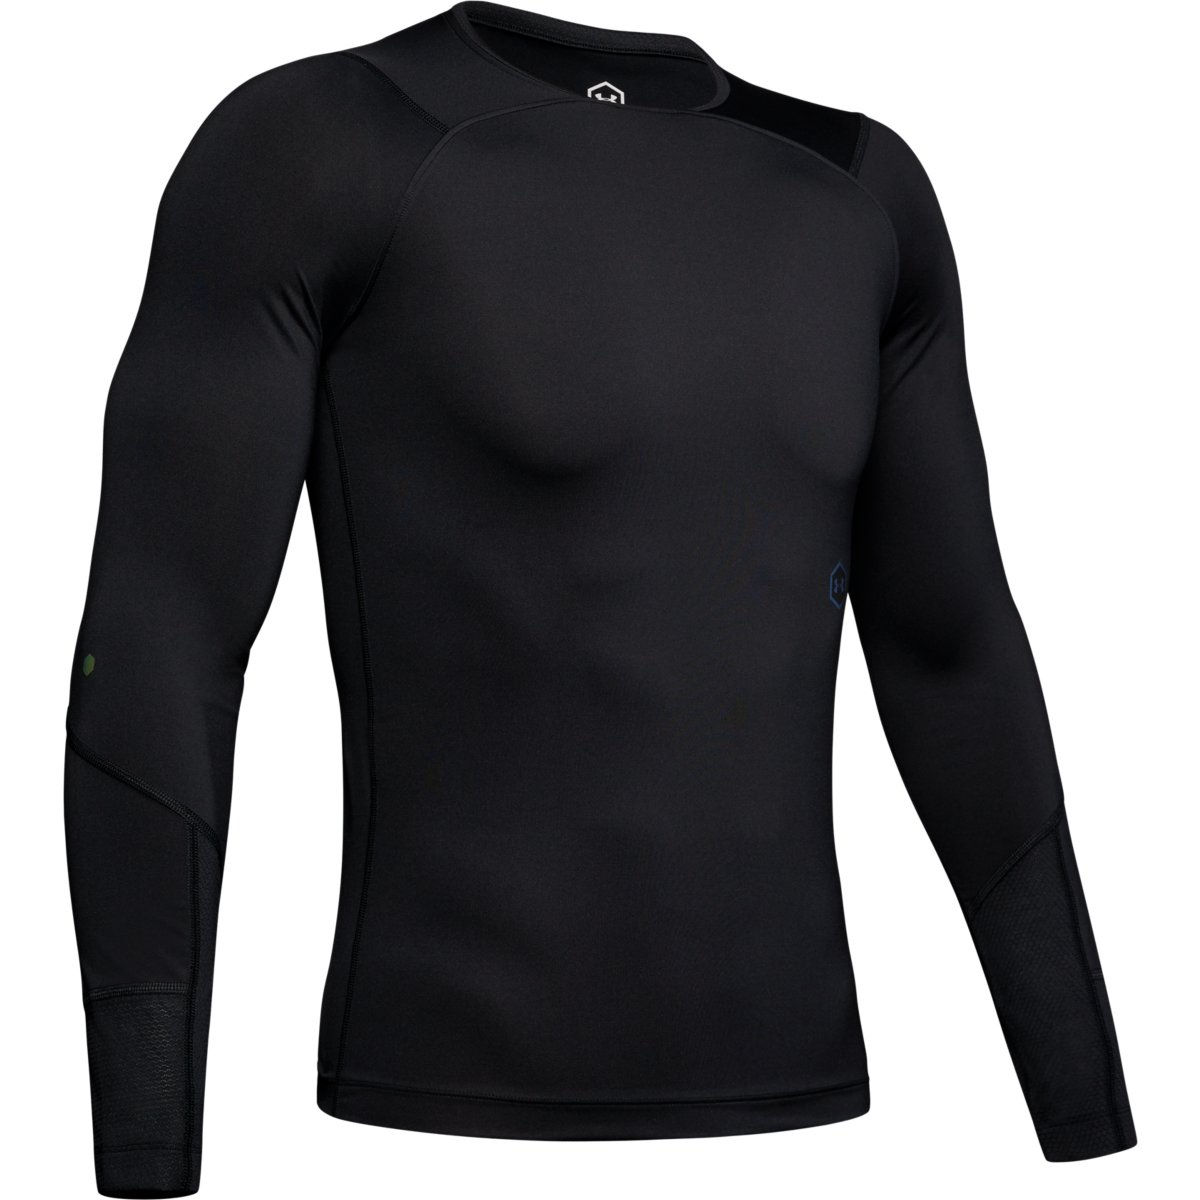 Under Armour Under Armour Rush Compression Long Sleeve Running Top   Long Sleeve Running Tops